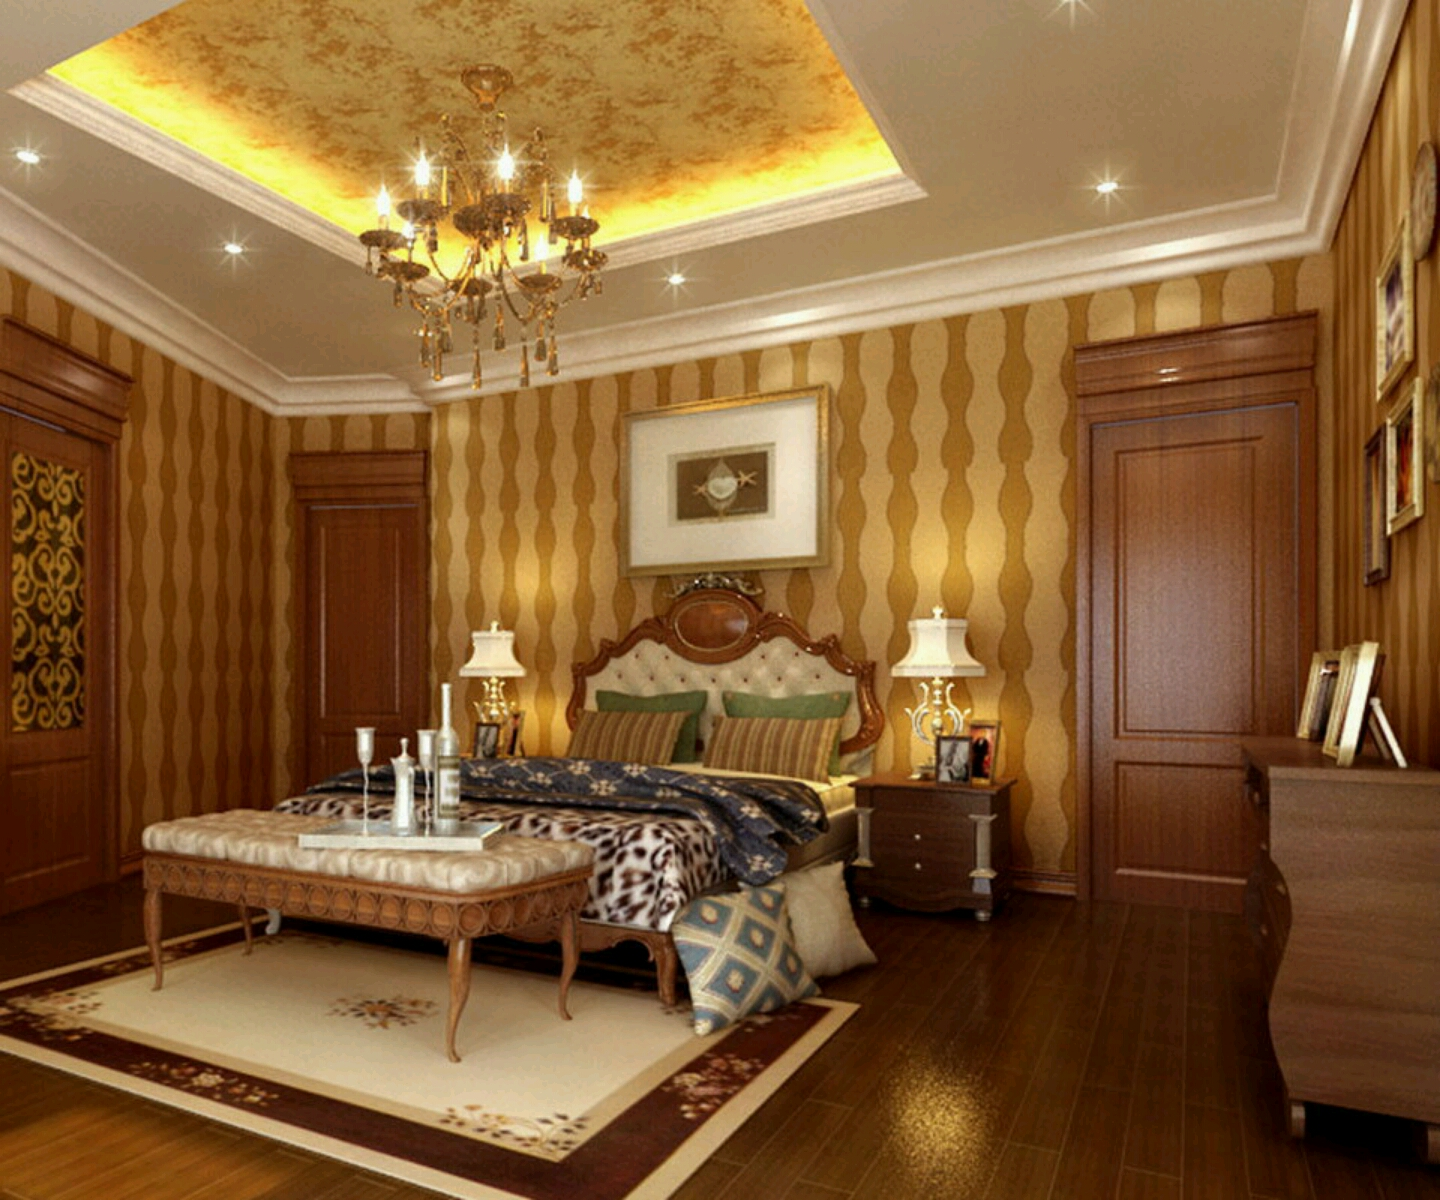 New home designs latest modern bedrooms designs ceiling designs ideas - Latest bedroom design ...